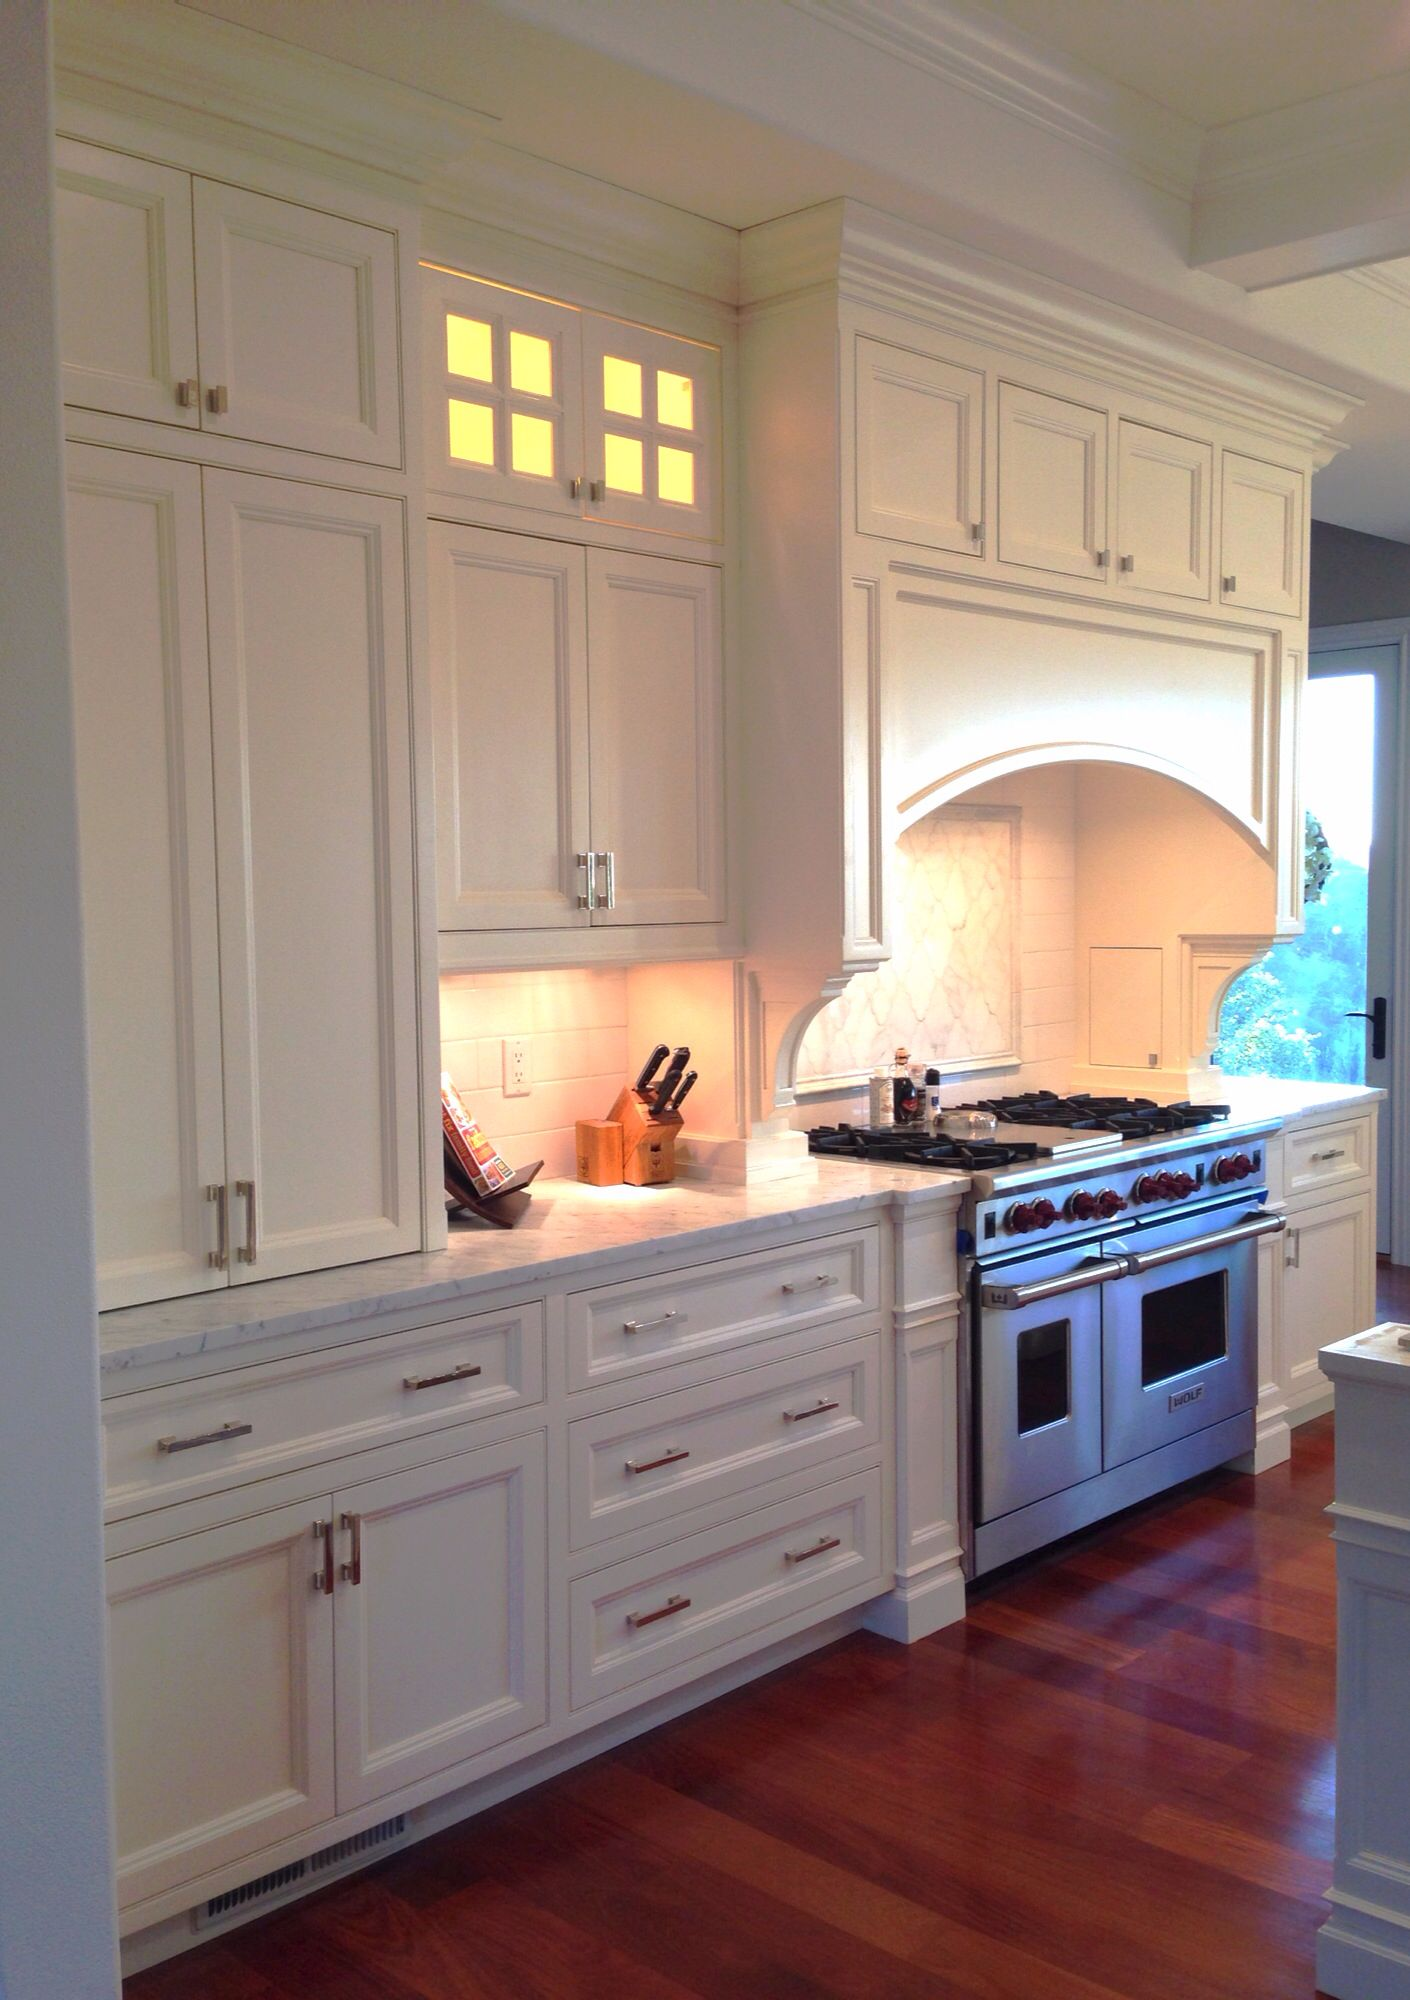 White Painted Kitchen Cabinets In Daisy White Sherwin Williams